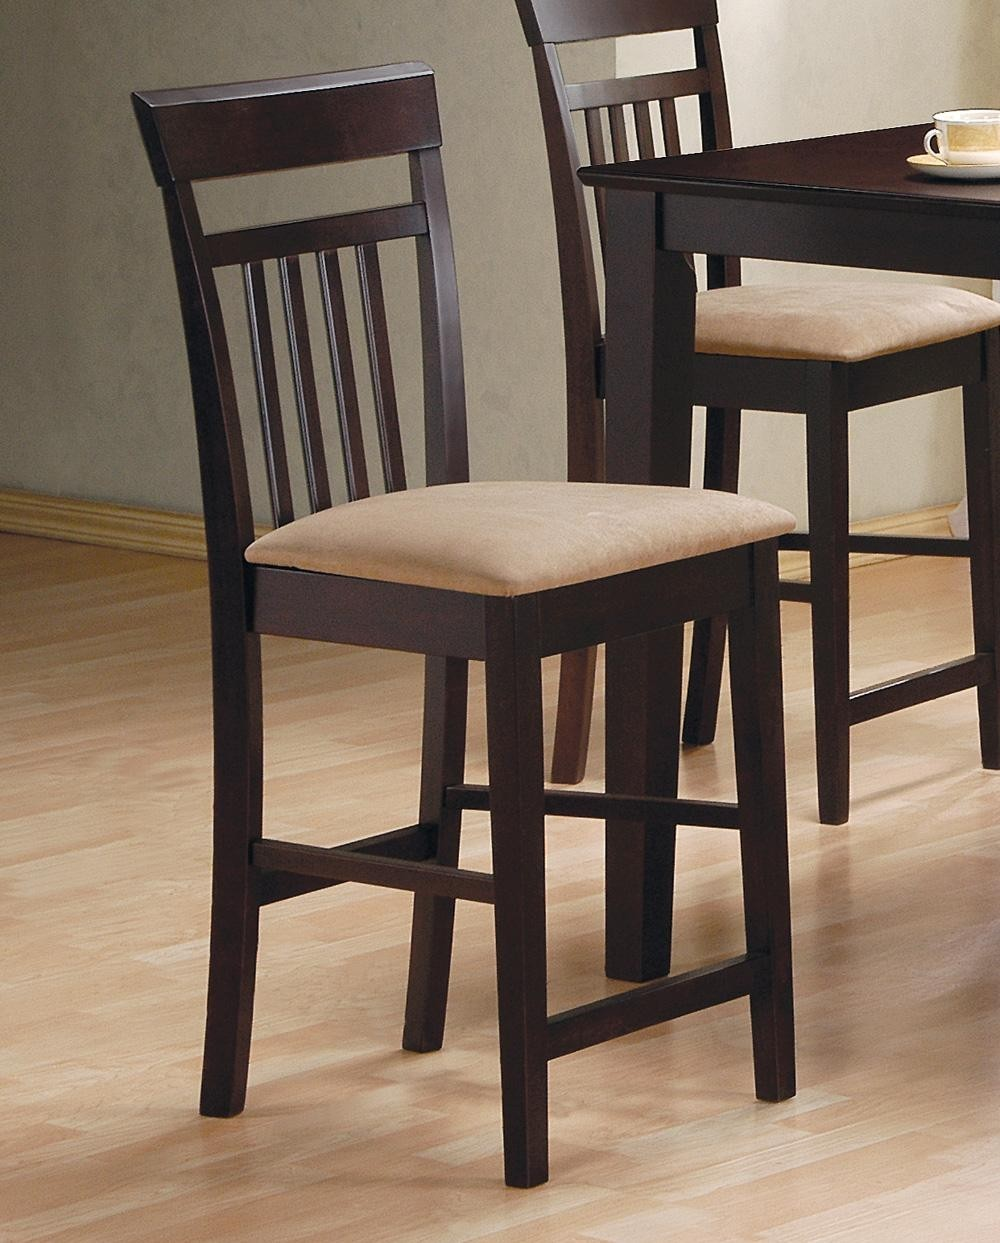 Dining Sets Black: 5 Pcs Black Counter Height Dining Set 150231BLK